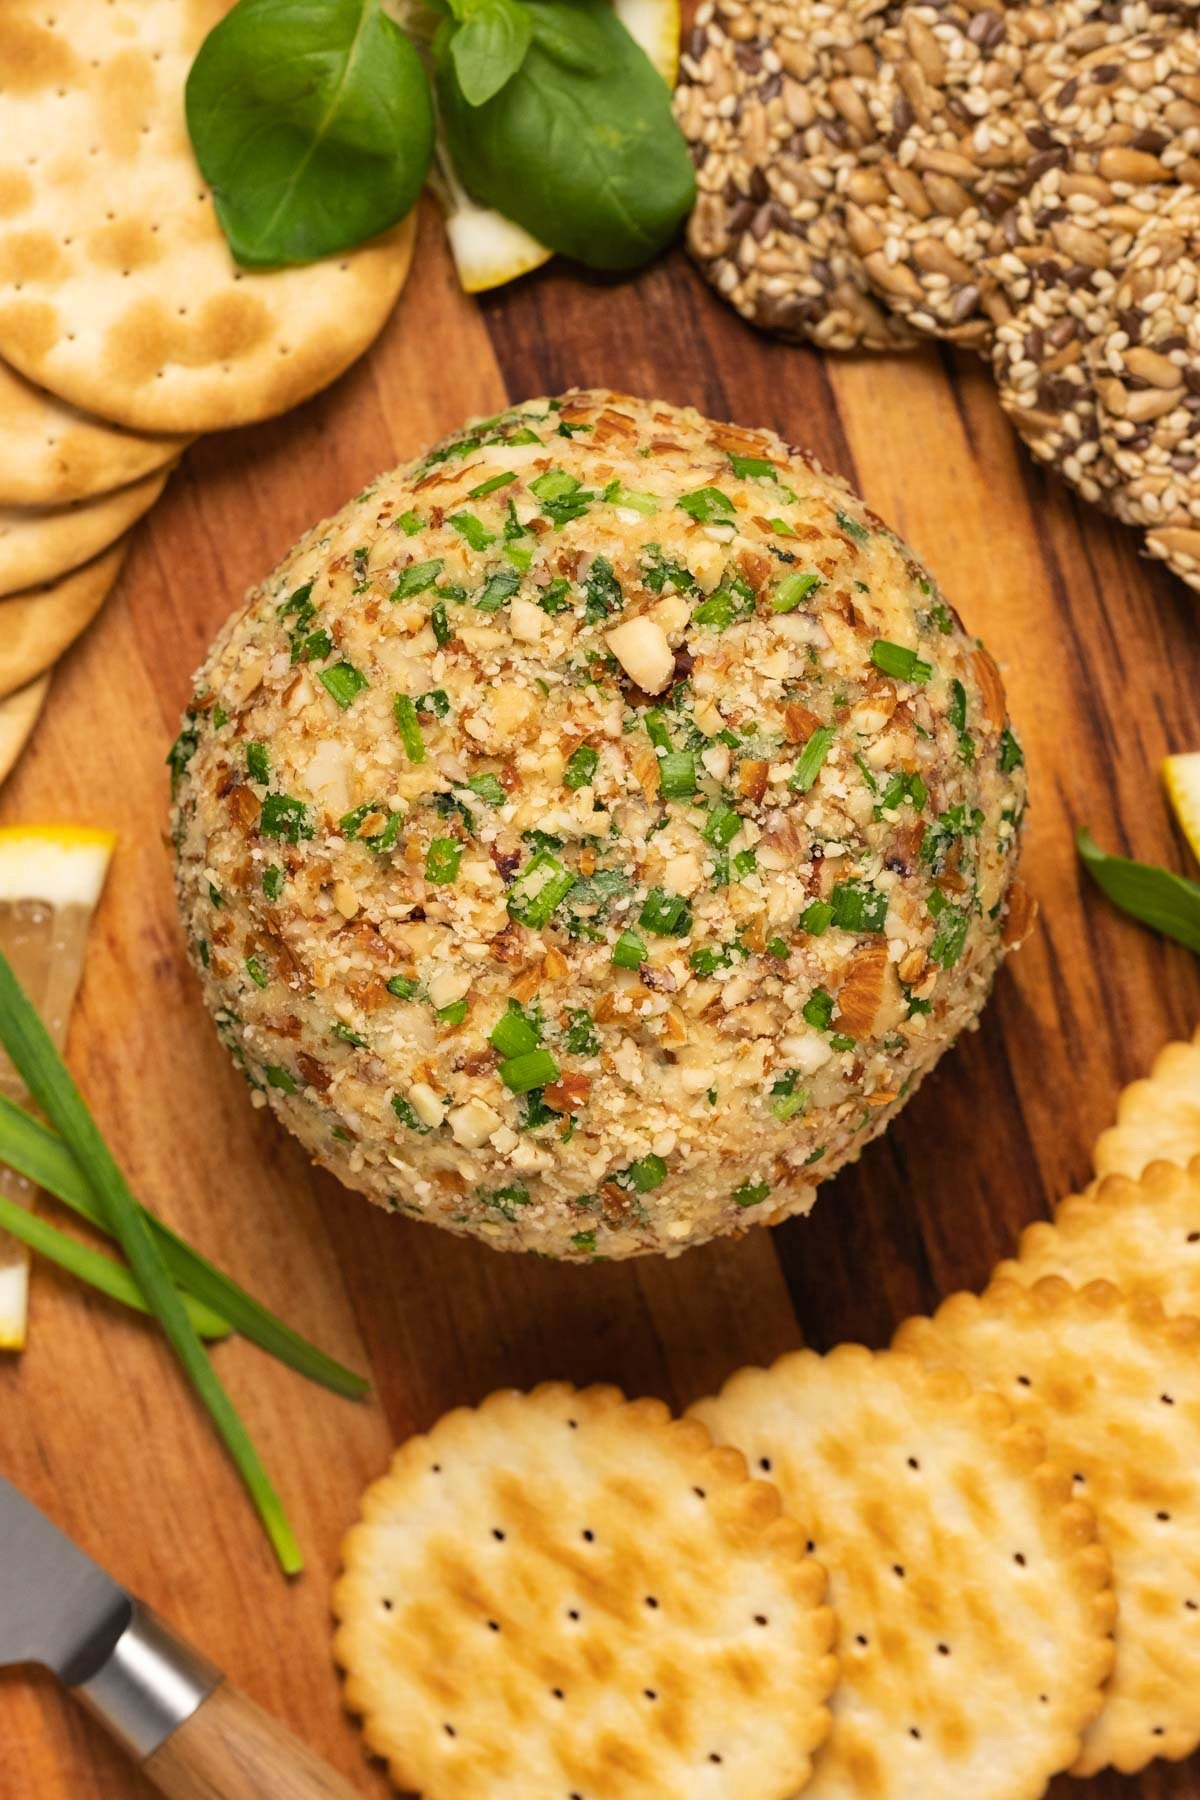 Vegan cheese ball with crackers and fresh basil on a wooden board.